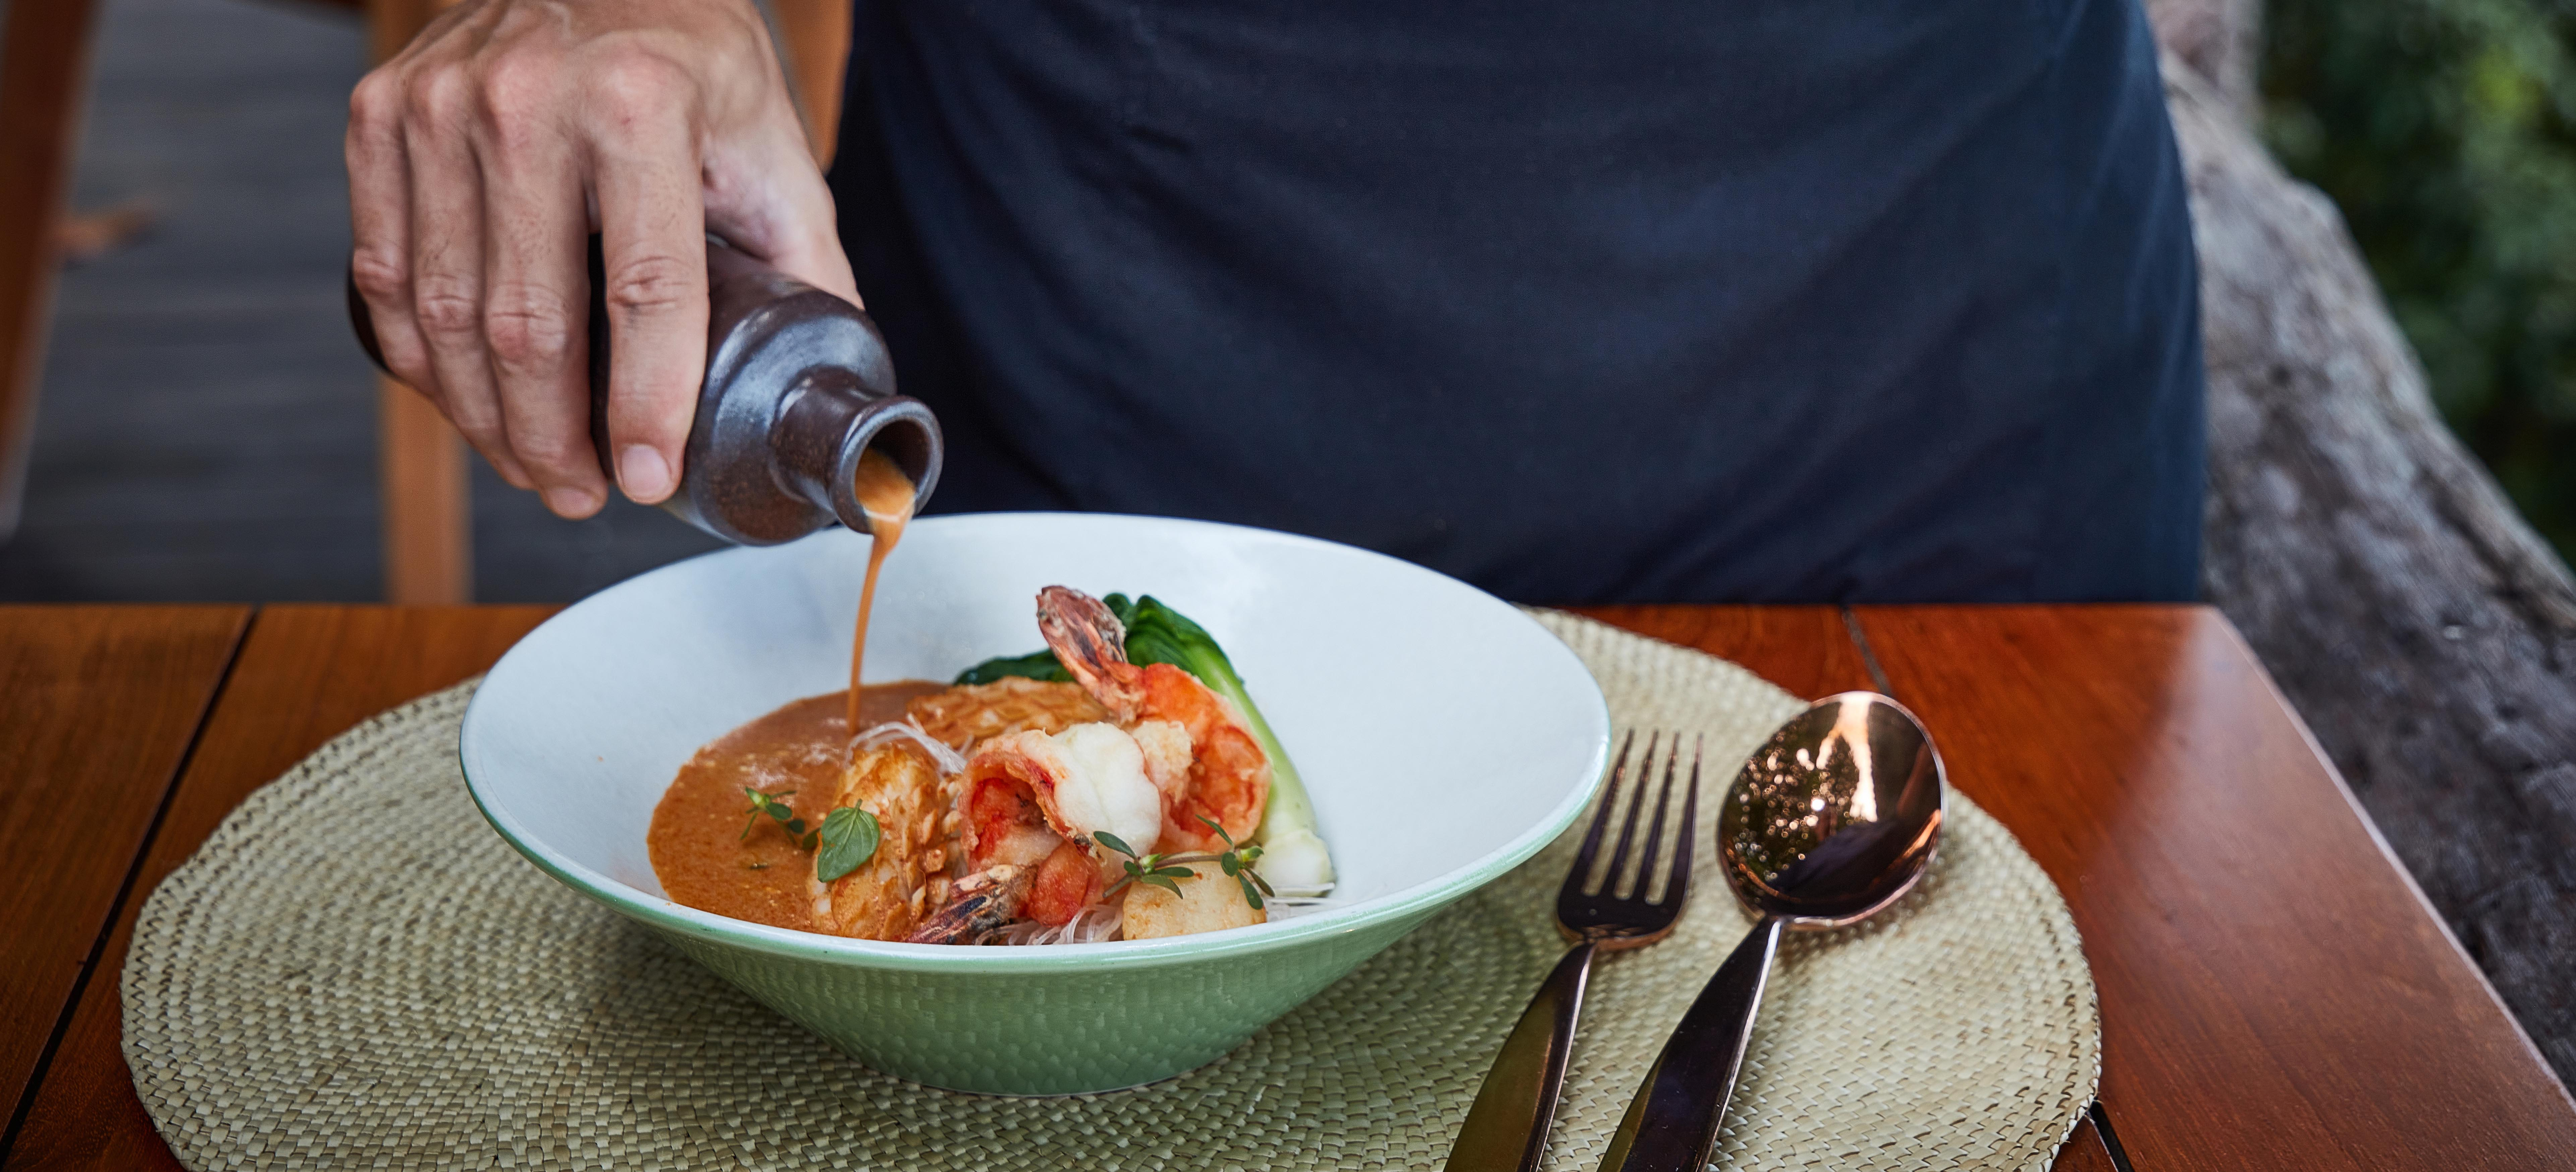 tree-tops-laksa-chef-pouring-sauce 4